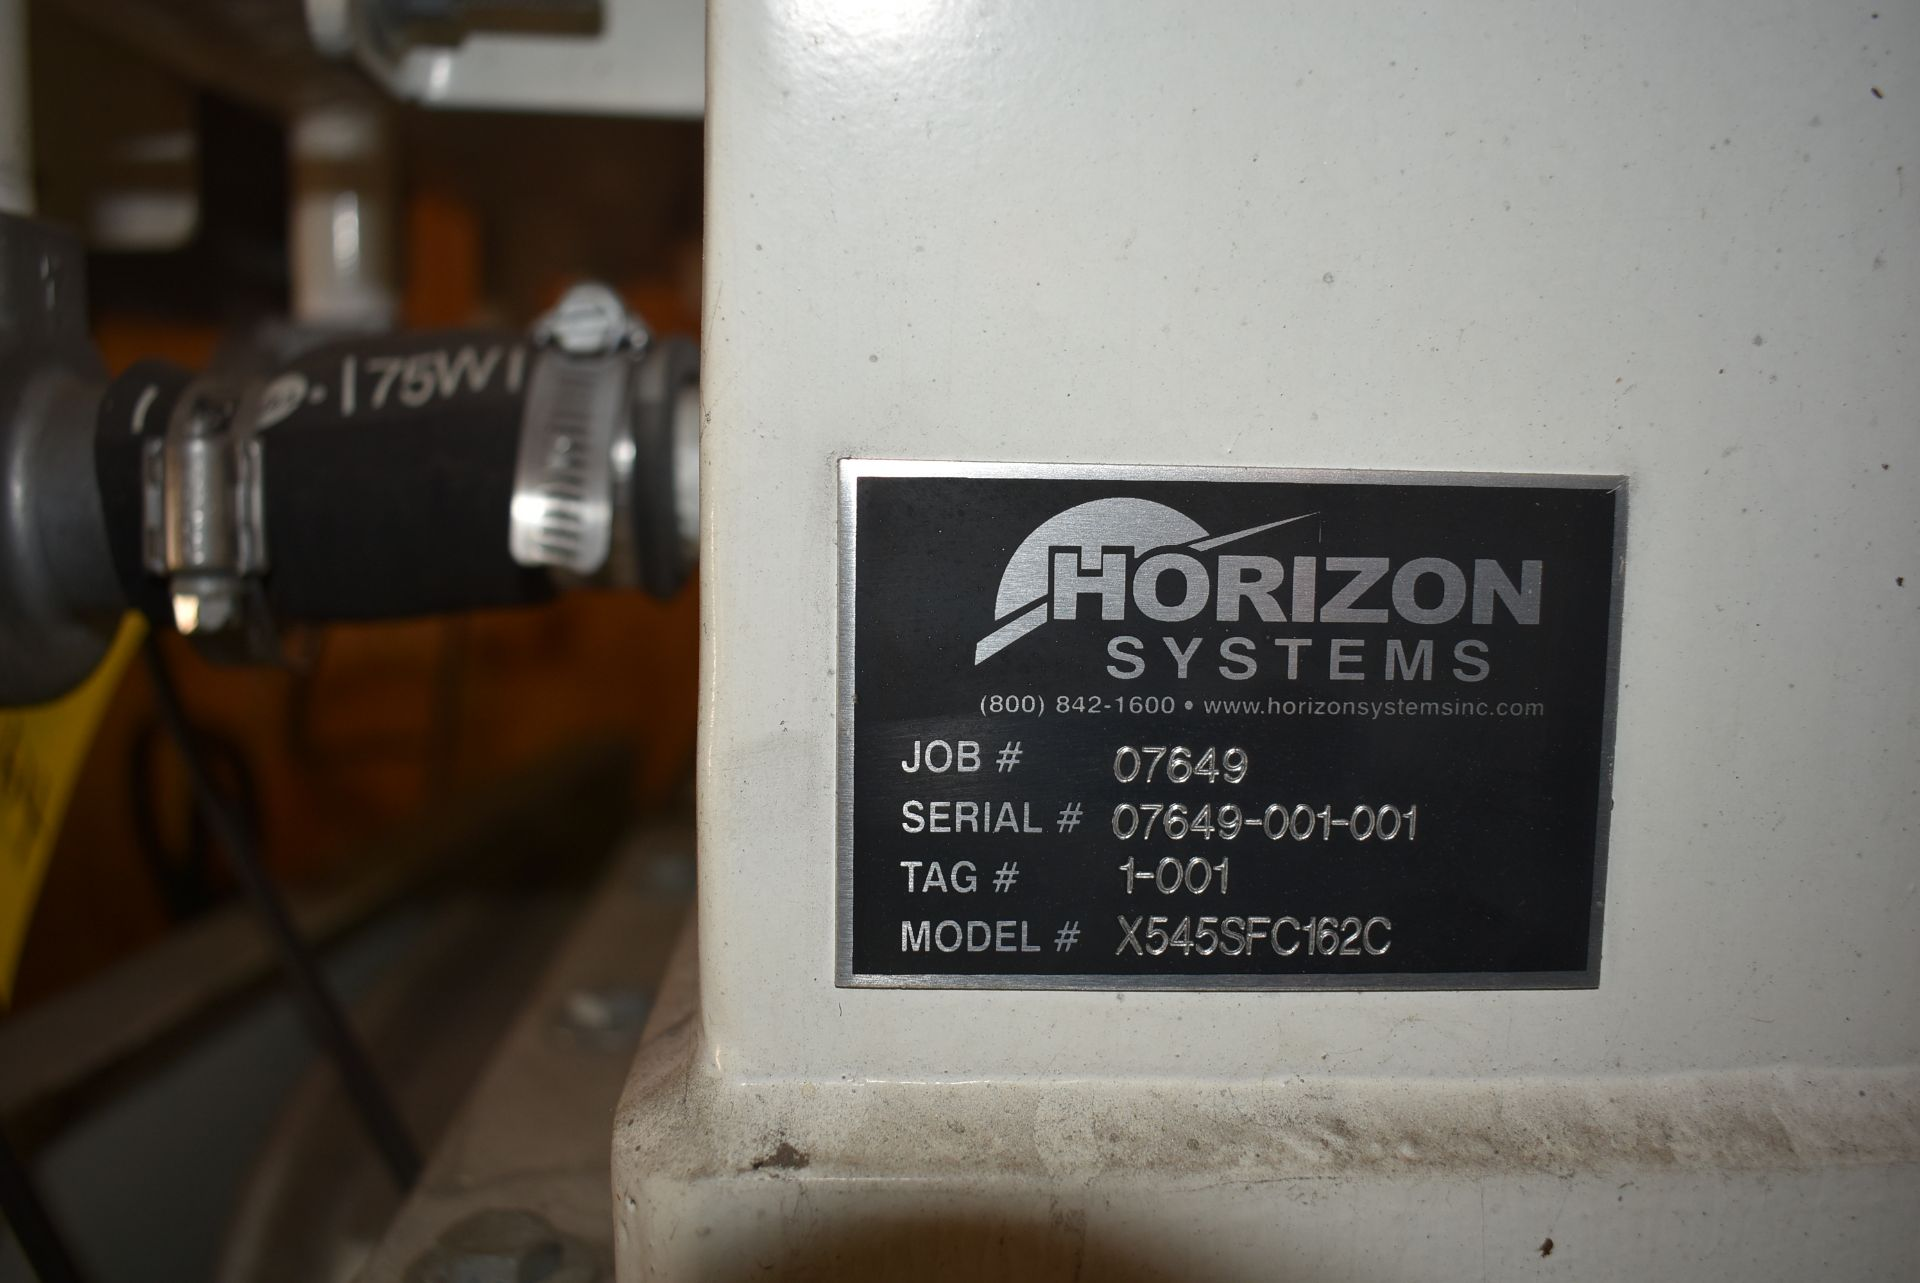 Horizon Systems Model #X5455FC162C Dust Collection System - Image 2 of 4